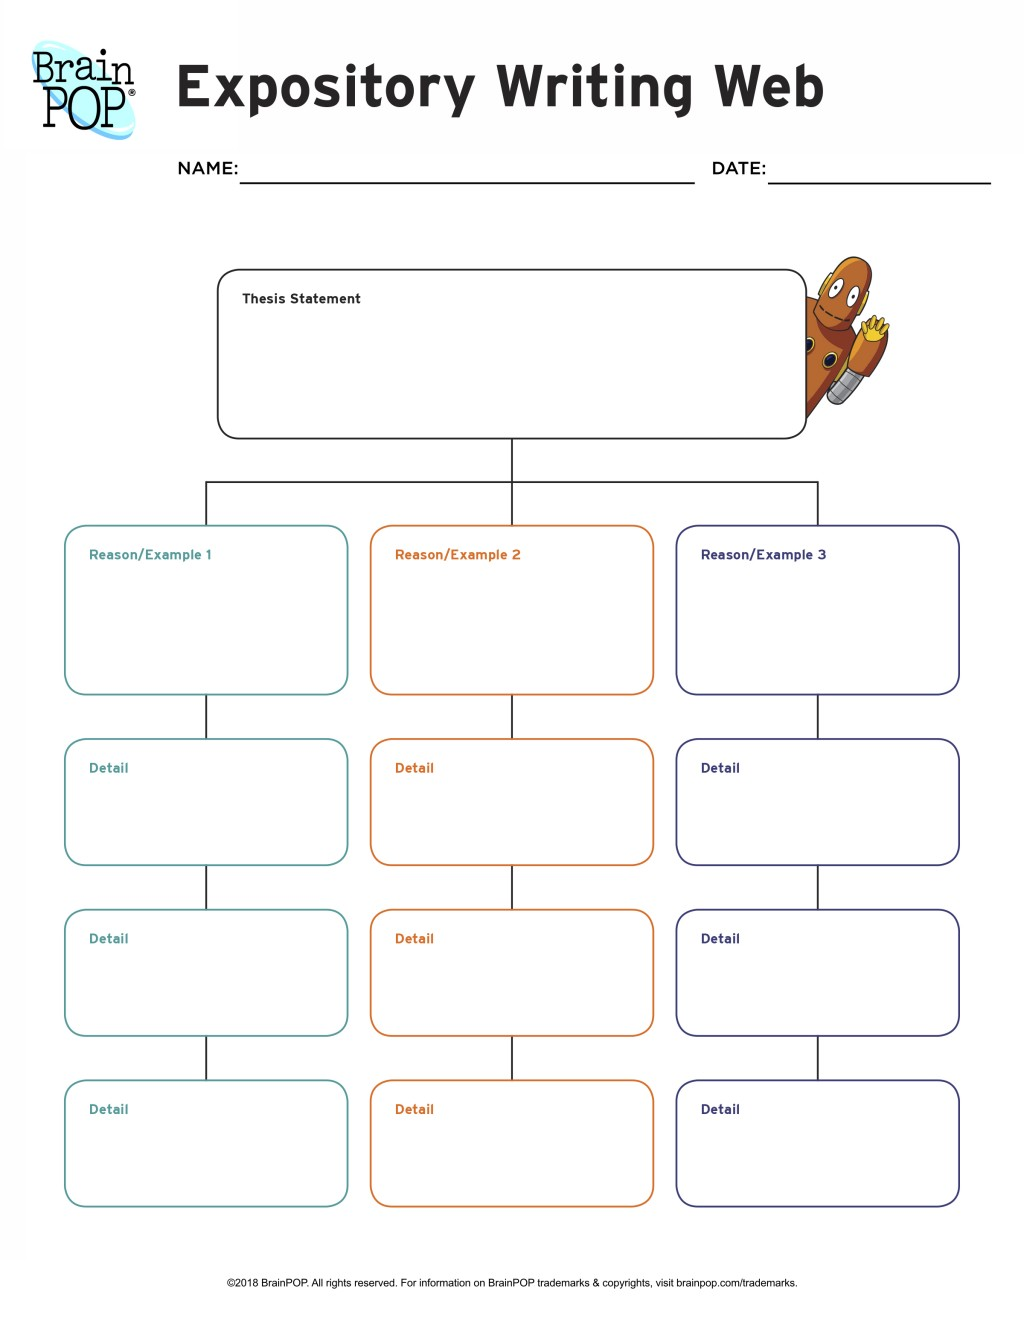 018 Essay Example Narrative Graphic Organizer Expository Web Incredible Middle School Pdf Story Large